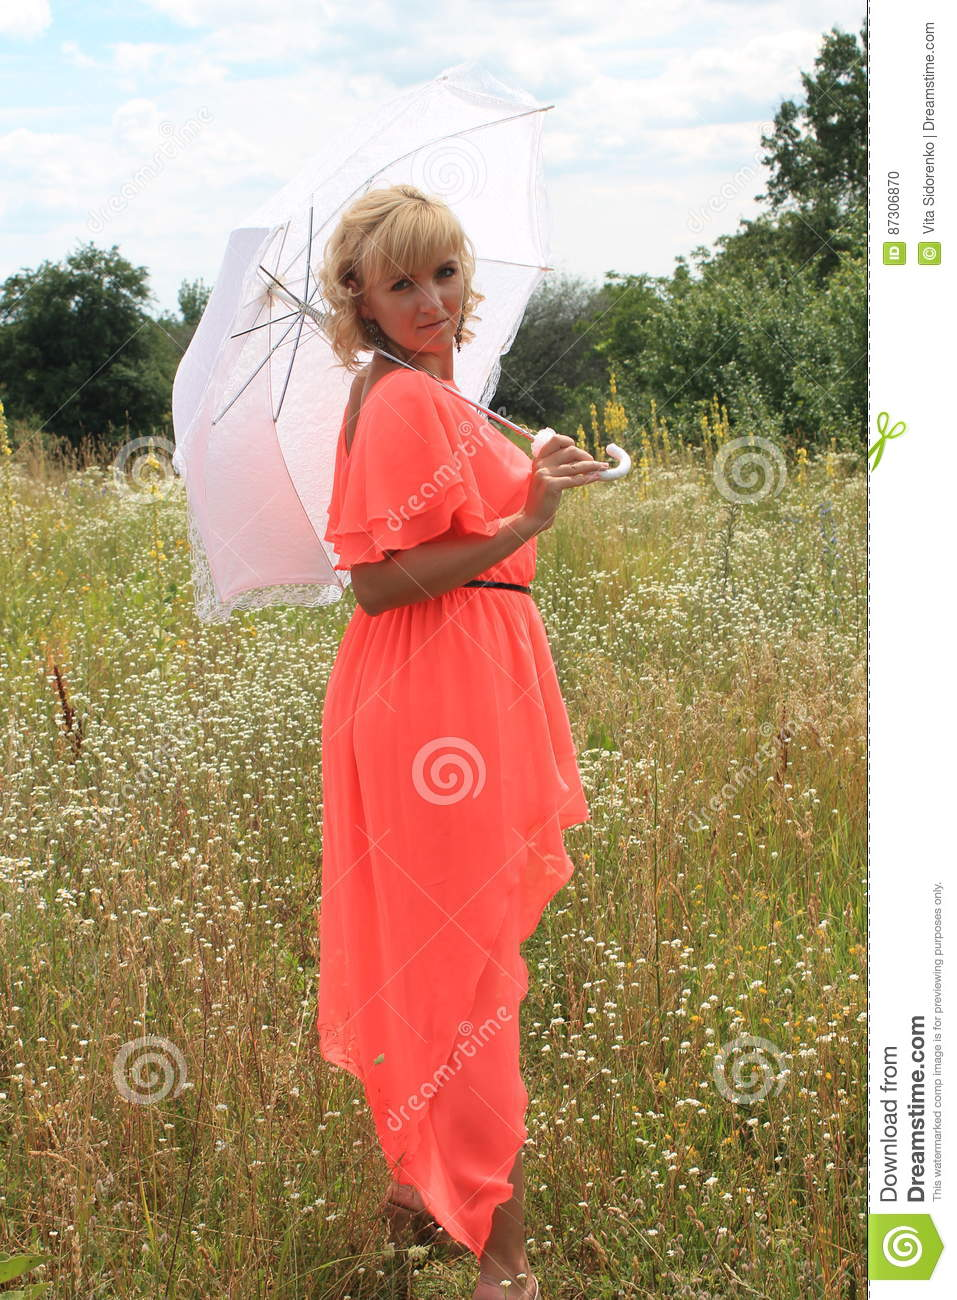 Girl with a white umbrella, a long dress, a field of flowers, a pink dress. beautiful blonde girl in a field of flowers